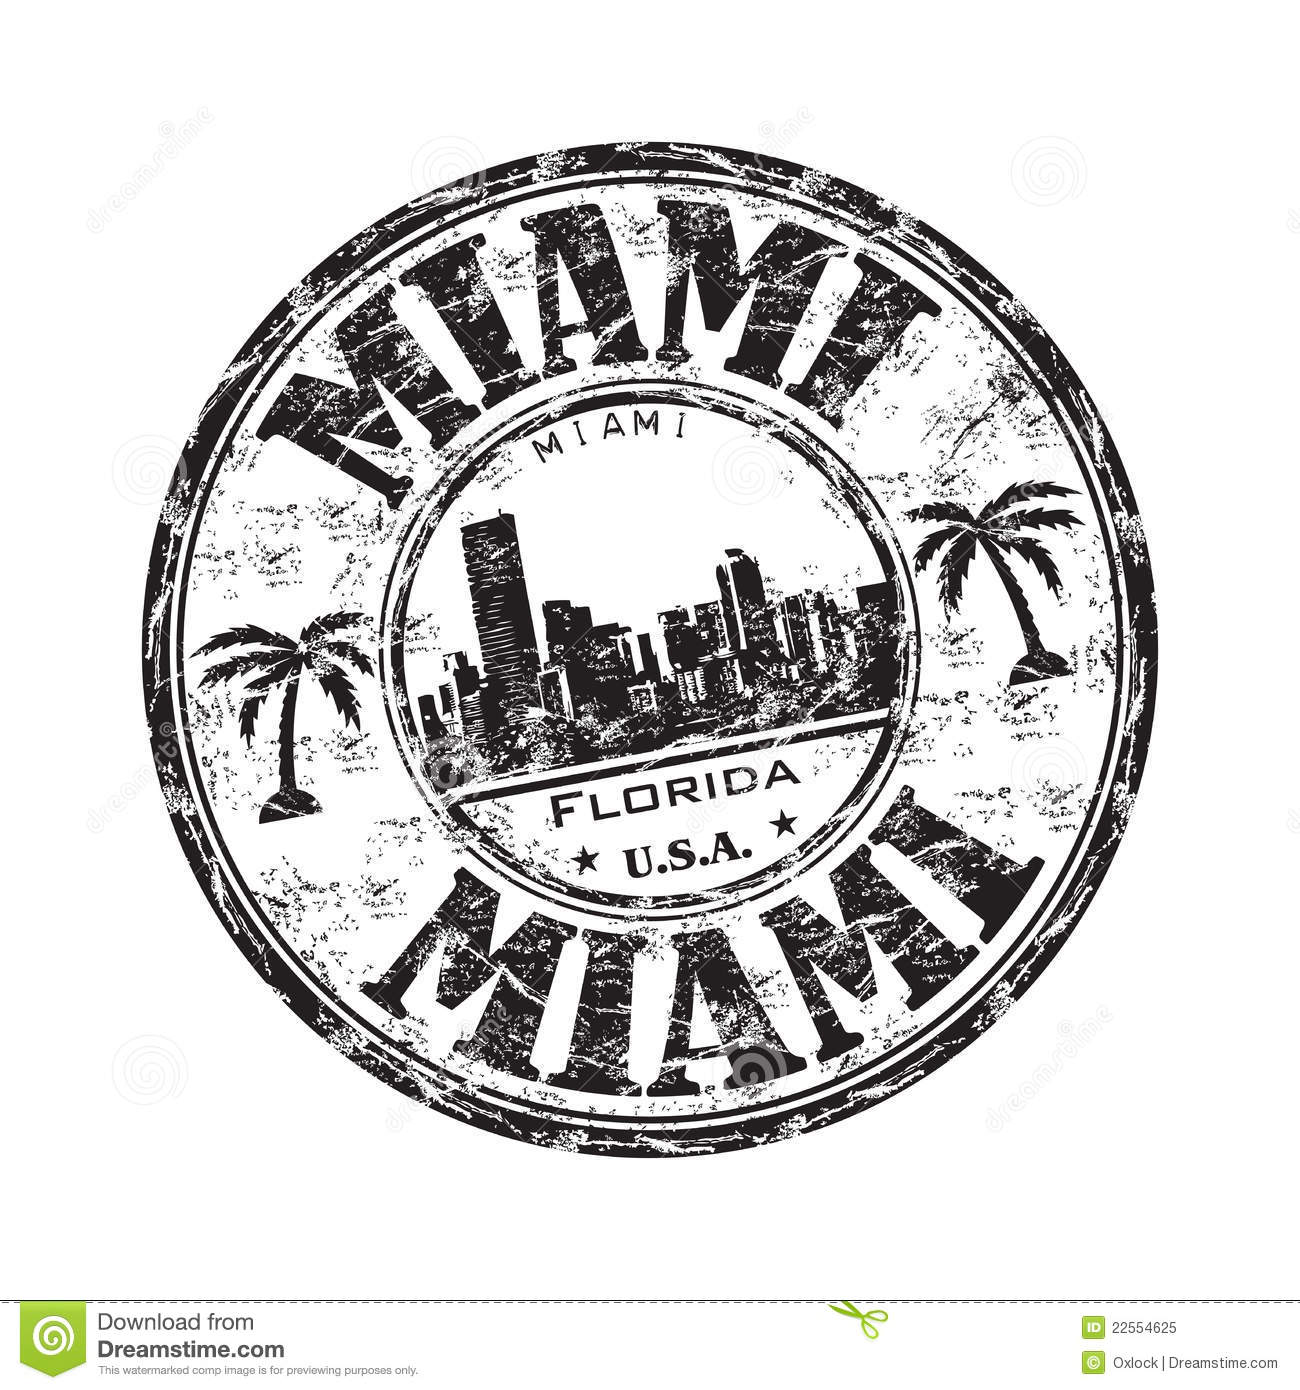 map of florida with Royalty Free Stock Photo Miami Grunge Rubber St  Image22554625 on B 541 r 3308 u caf267 as well Printable Map Of North Carolina further 557320522609186362 additionally P1 state nebraska map in addition File Map of Utah highlighting Summit County.